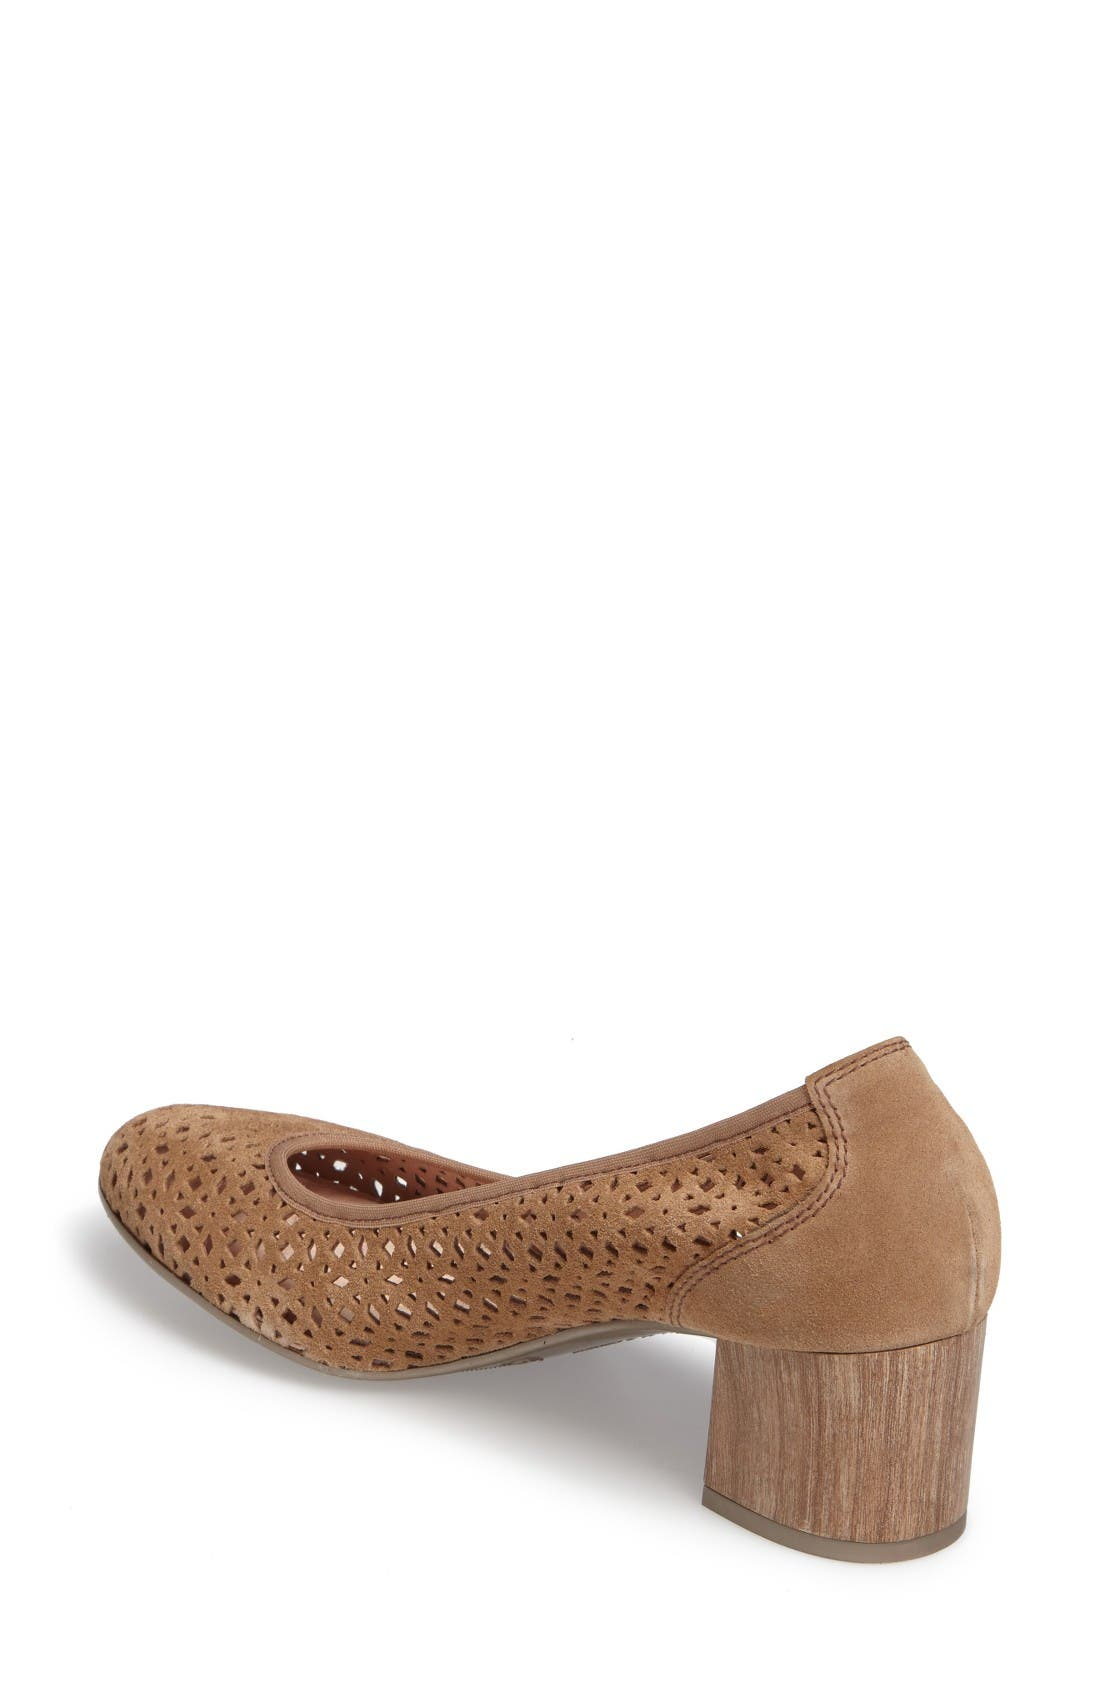 Jovanna Perforated Pump,                             Alternate thumbnail 2, color,                             Velour Avena Leather